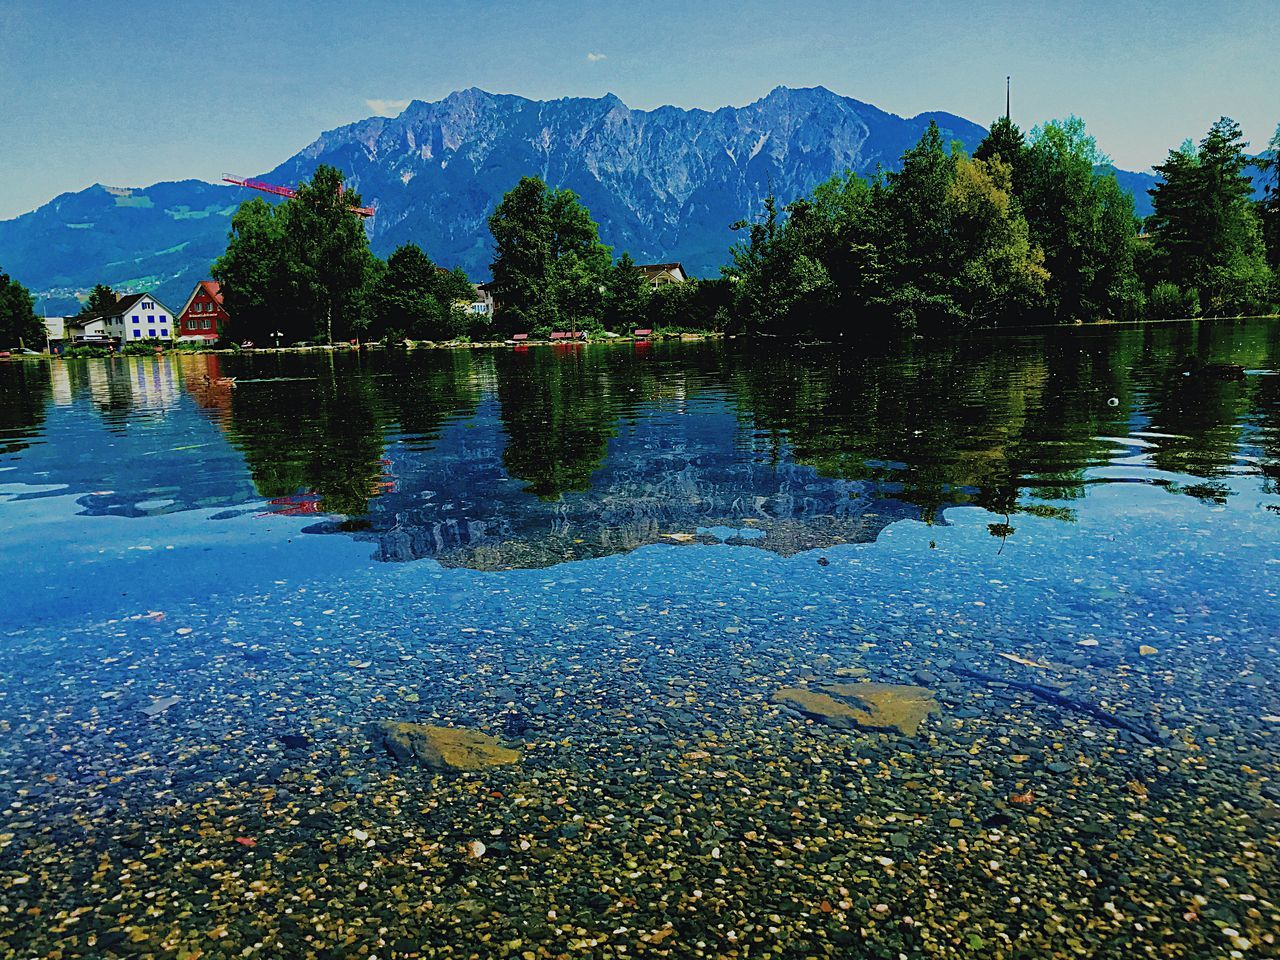 reflection, water, lake, mountain, tree, nature, scenics, tranquil scene, beauty in nature, tranquility, outdoors, no people, day, sky, mountain range, waterfront, blue, clear sky, animal themes